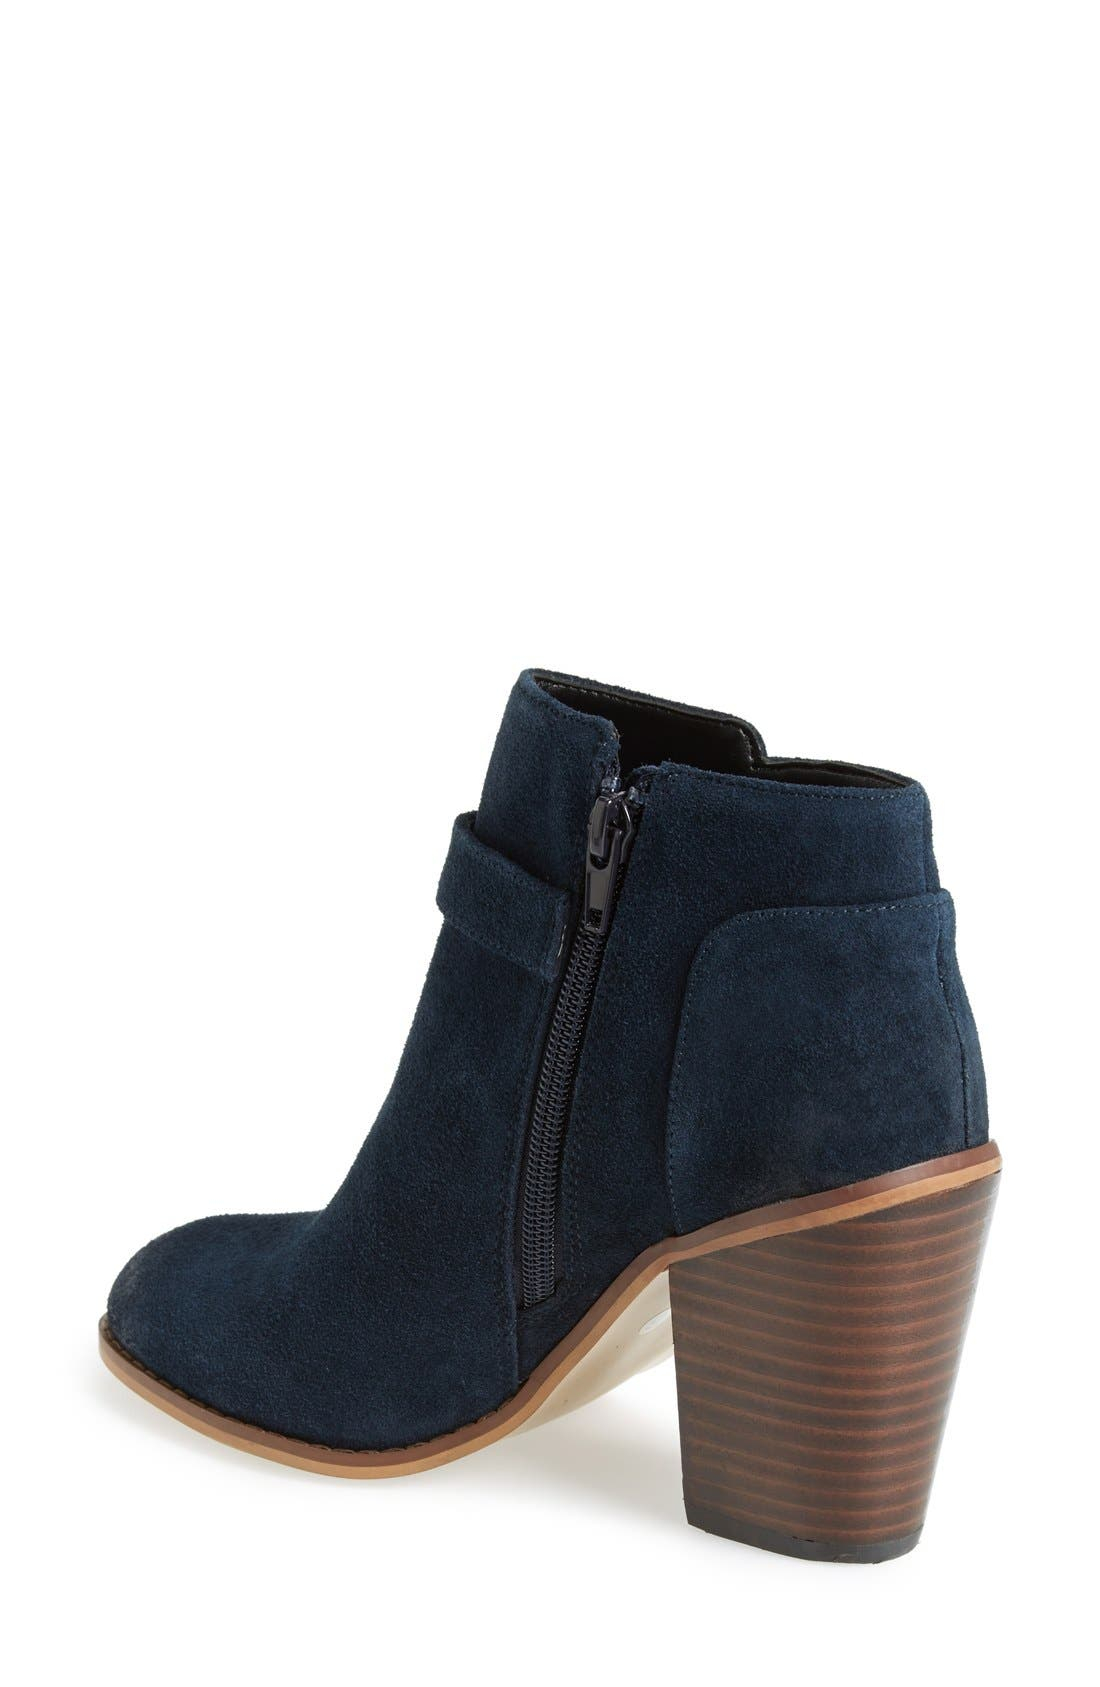 'Lyriq' Bootie,                             Alternate thumbnail 2, color,                             Ink Navy Suede